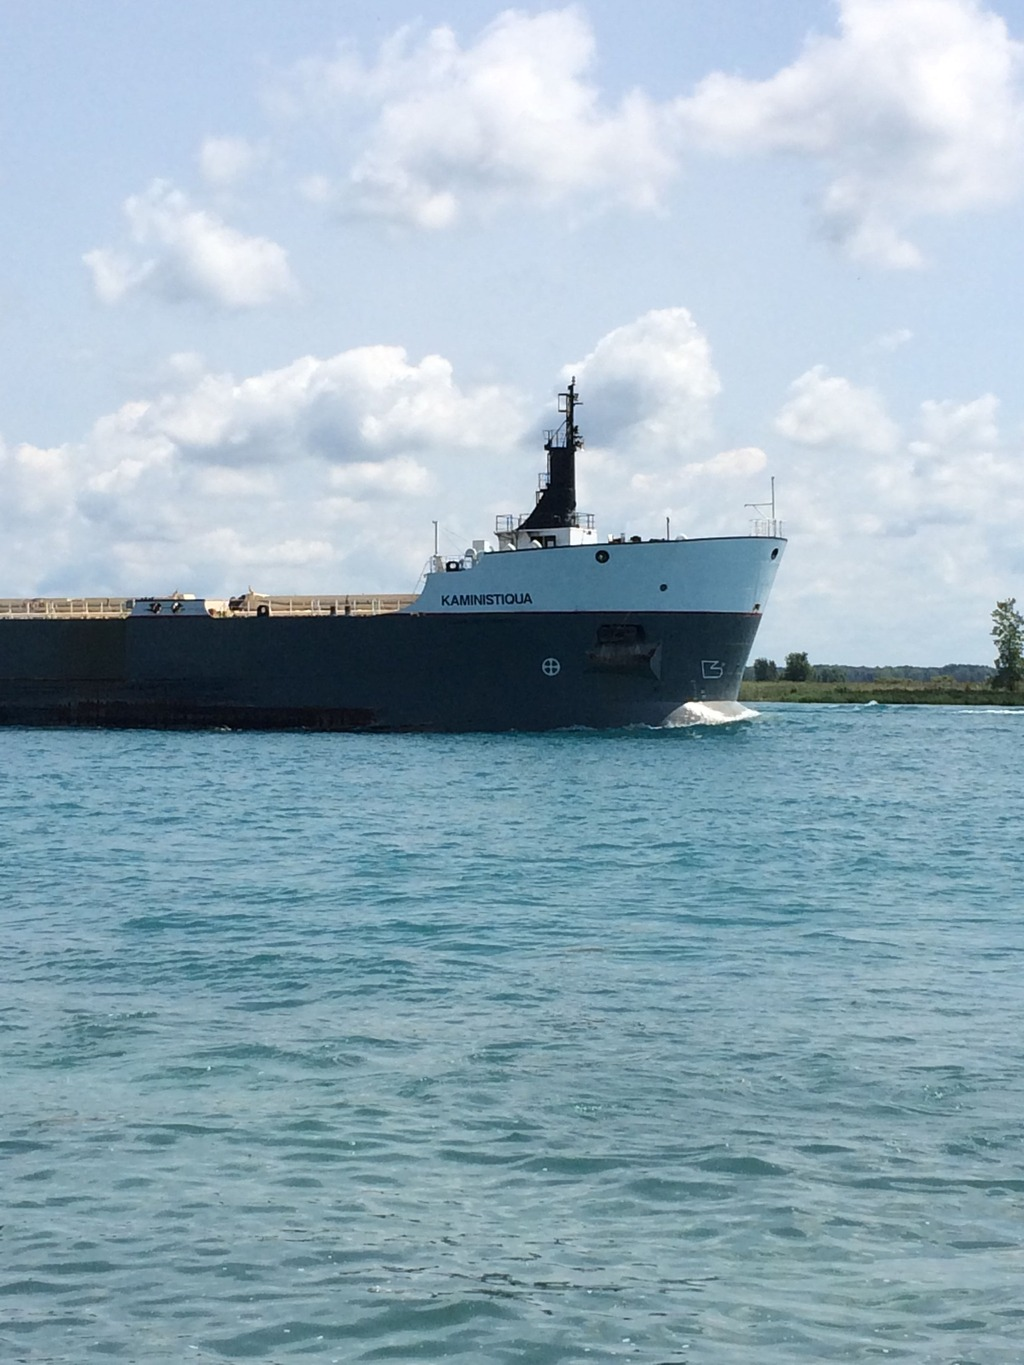 picture of great lakes ship: Kaministiqua